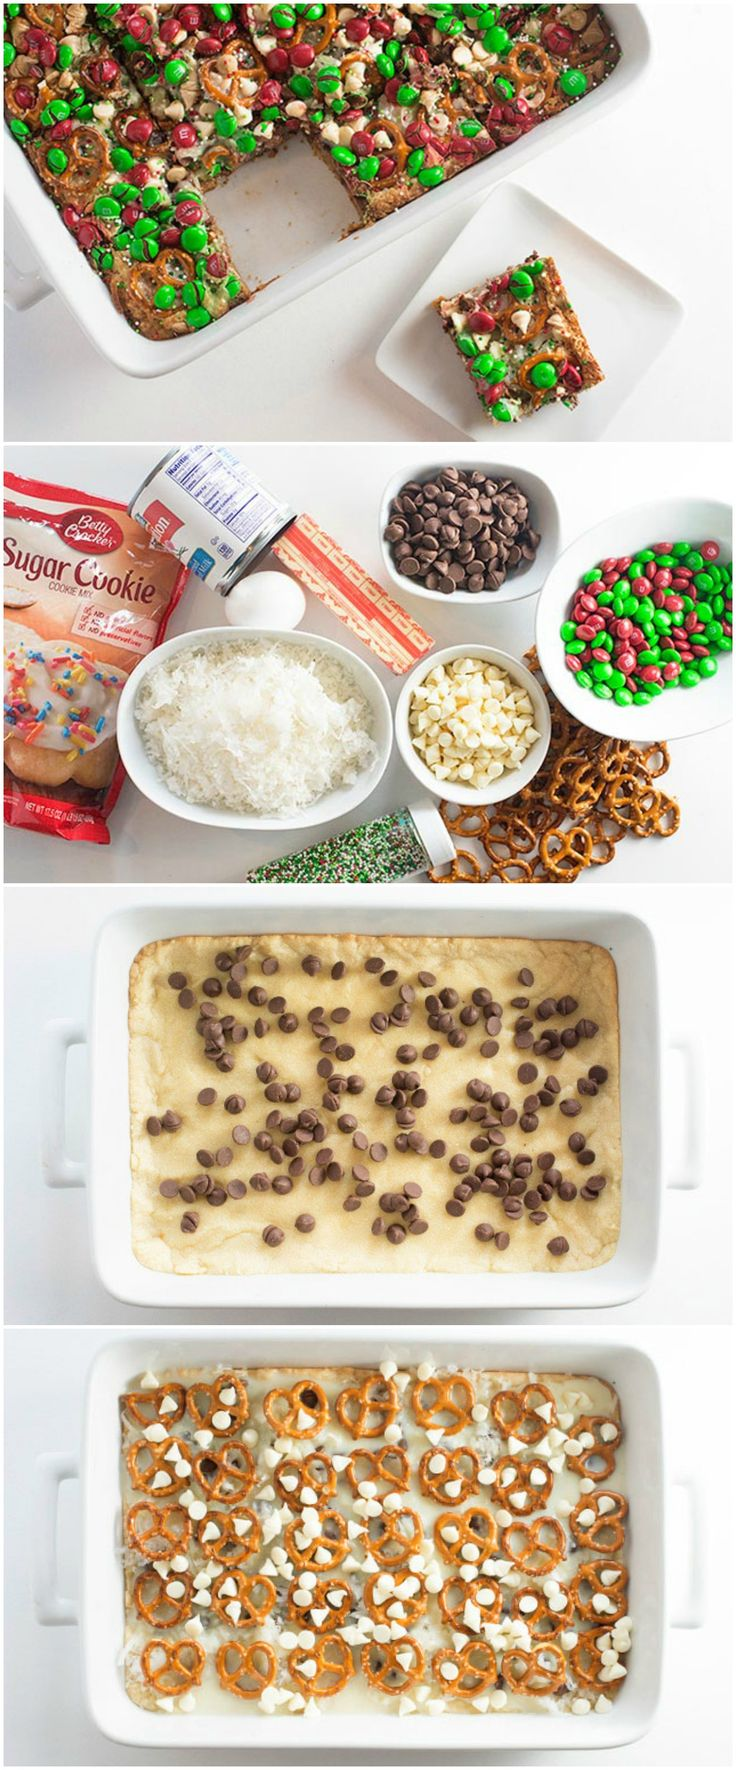 7-LAYER CHRISTMAS COOKIE BARS | These aren't just ANY 7 layers...it's basically 7 of the most delicious layers your tastebuds could ask for. Cookies, piled with coconut, chocolate, pretzels, more chocolate...MERRY CHRISTMAS TO US. It's never too early to start planning with our friends at tablespoon. #ad